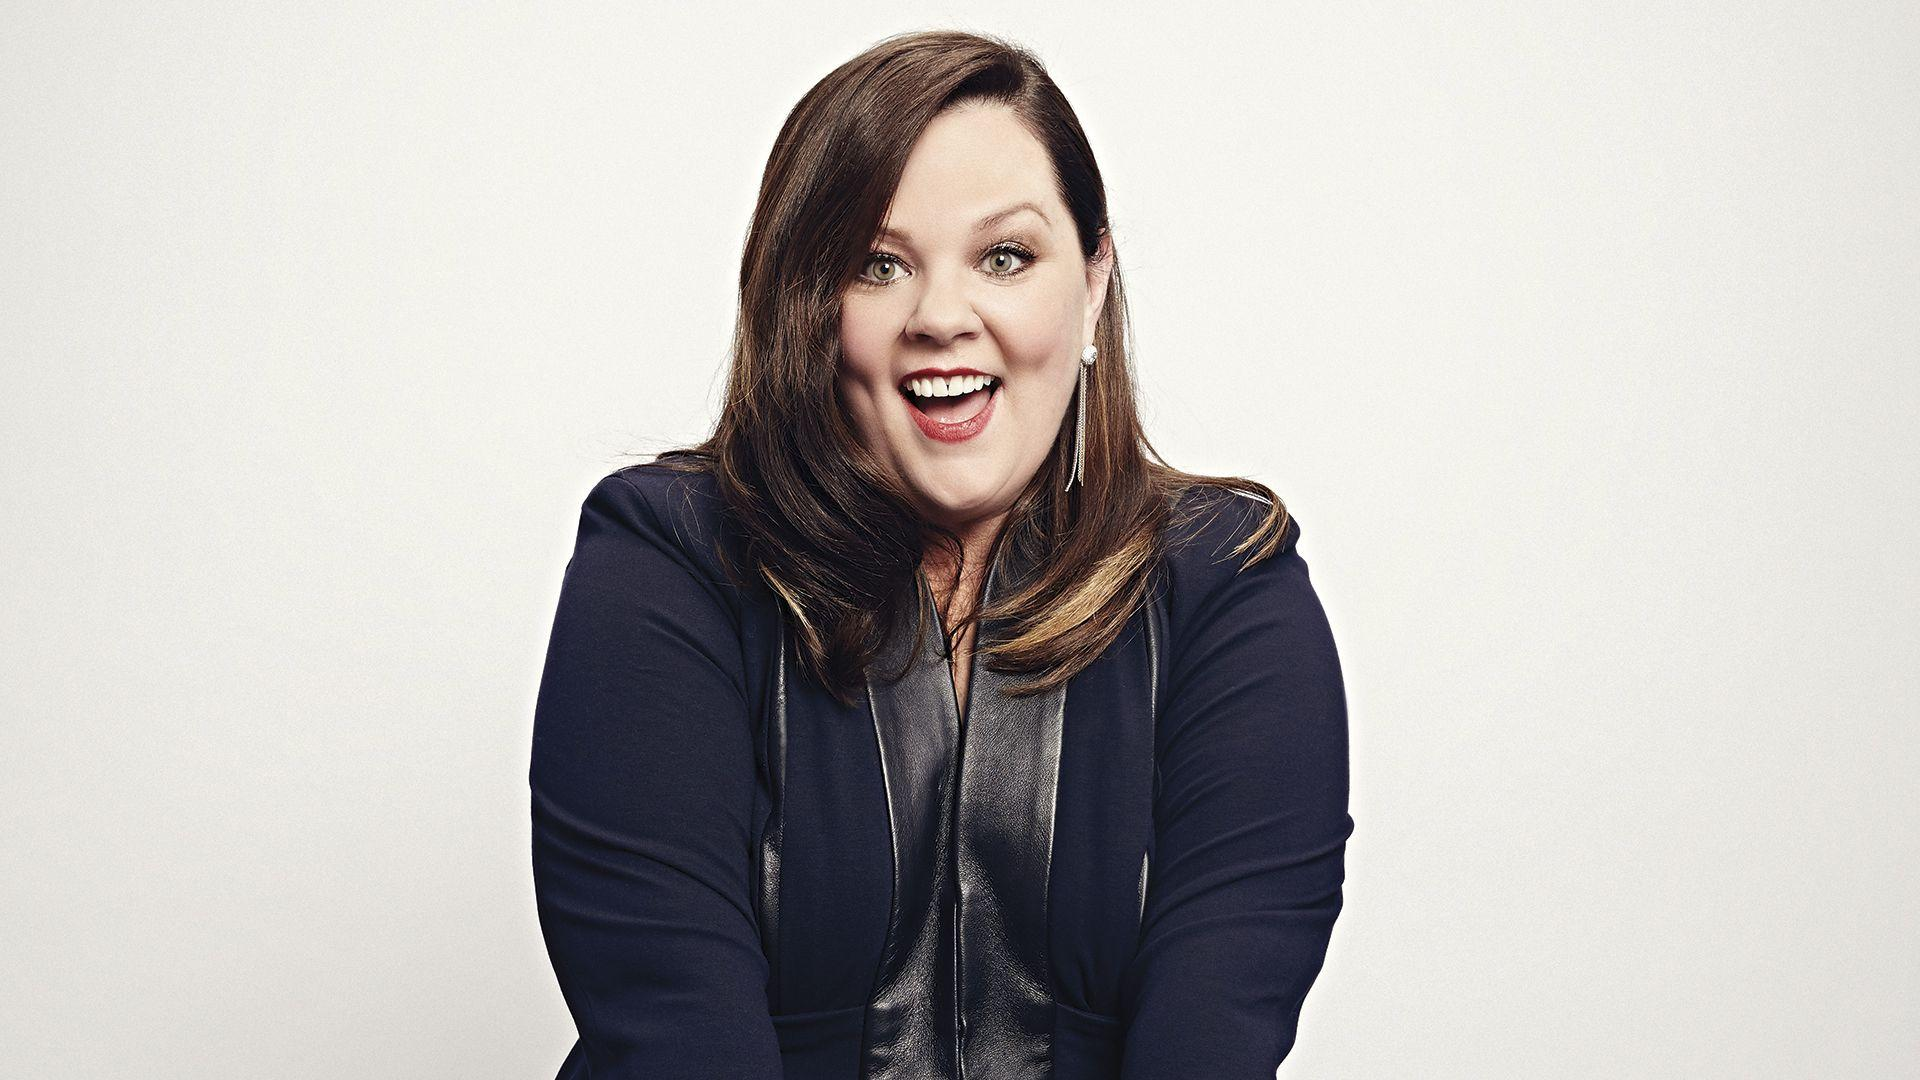 Download Wallpaper 1920x1080 Melissa mccarthy, Actress, Smiling ...